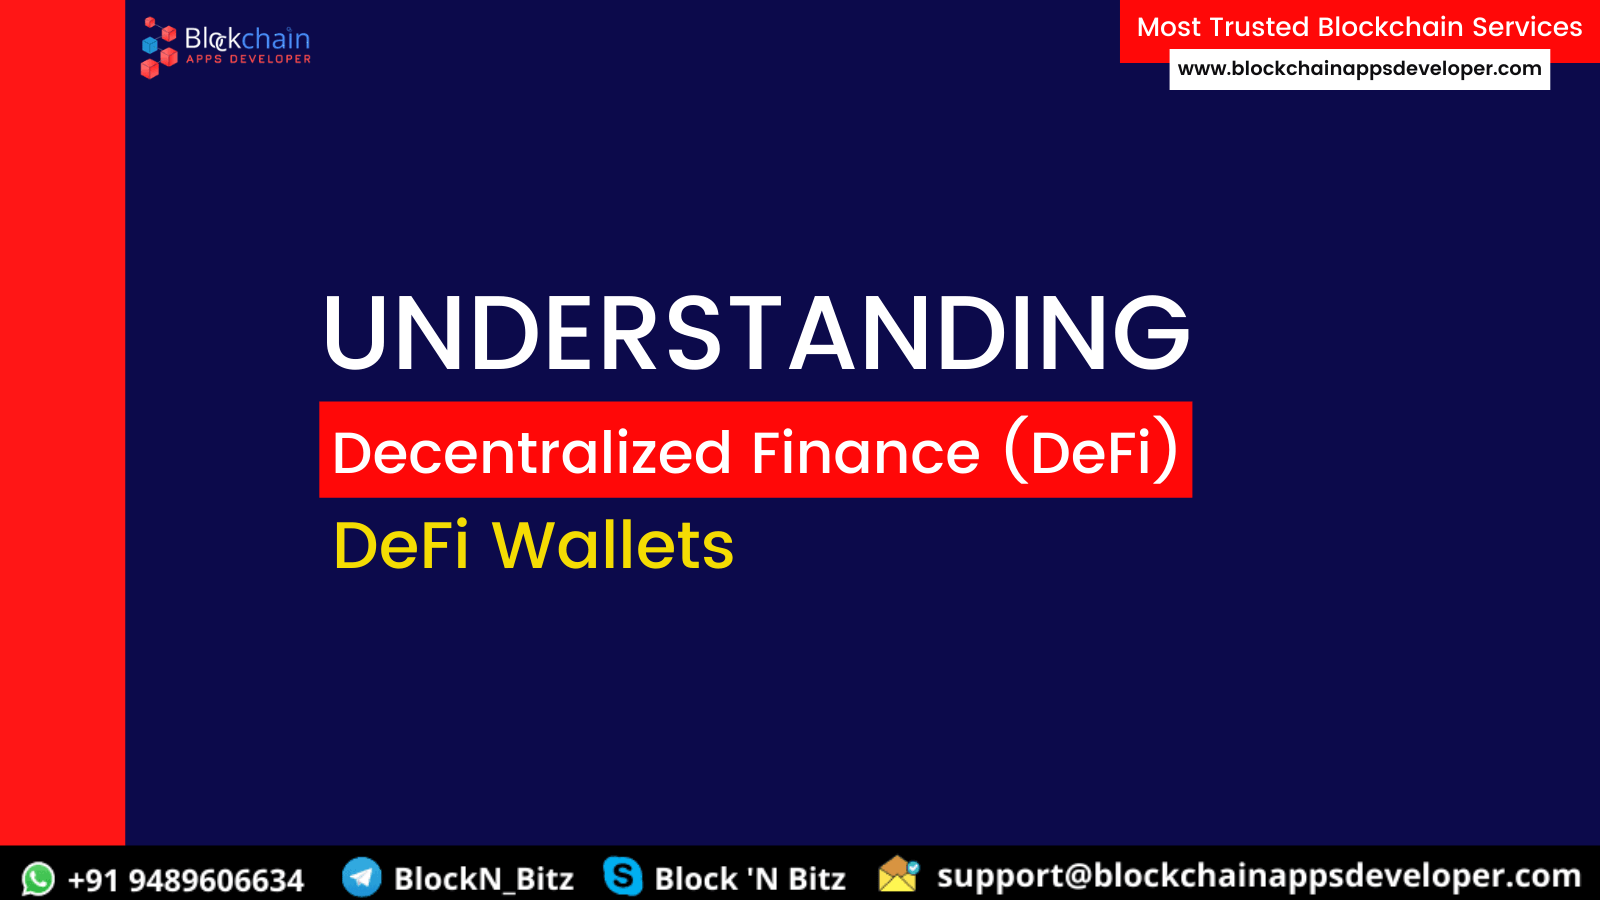 DECENTRALIZED FINANCE (DEFI) WALLET DEVELOPMENT COMPANY | THE MAJOR ROLE OF DEFI IN CRYPTOCURRENCY WALLET DEVELOPMENT